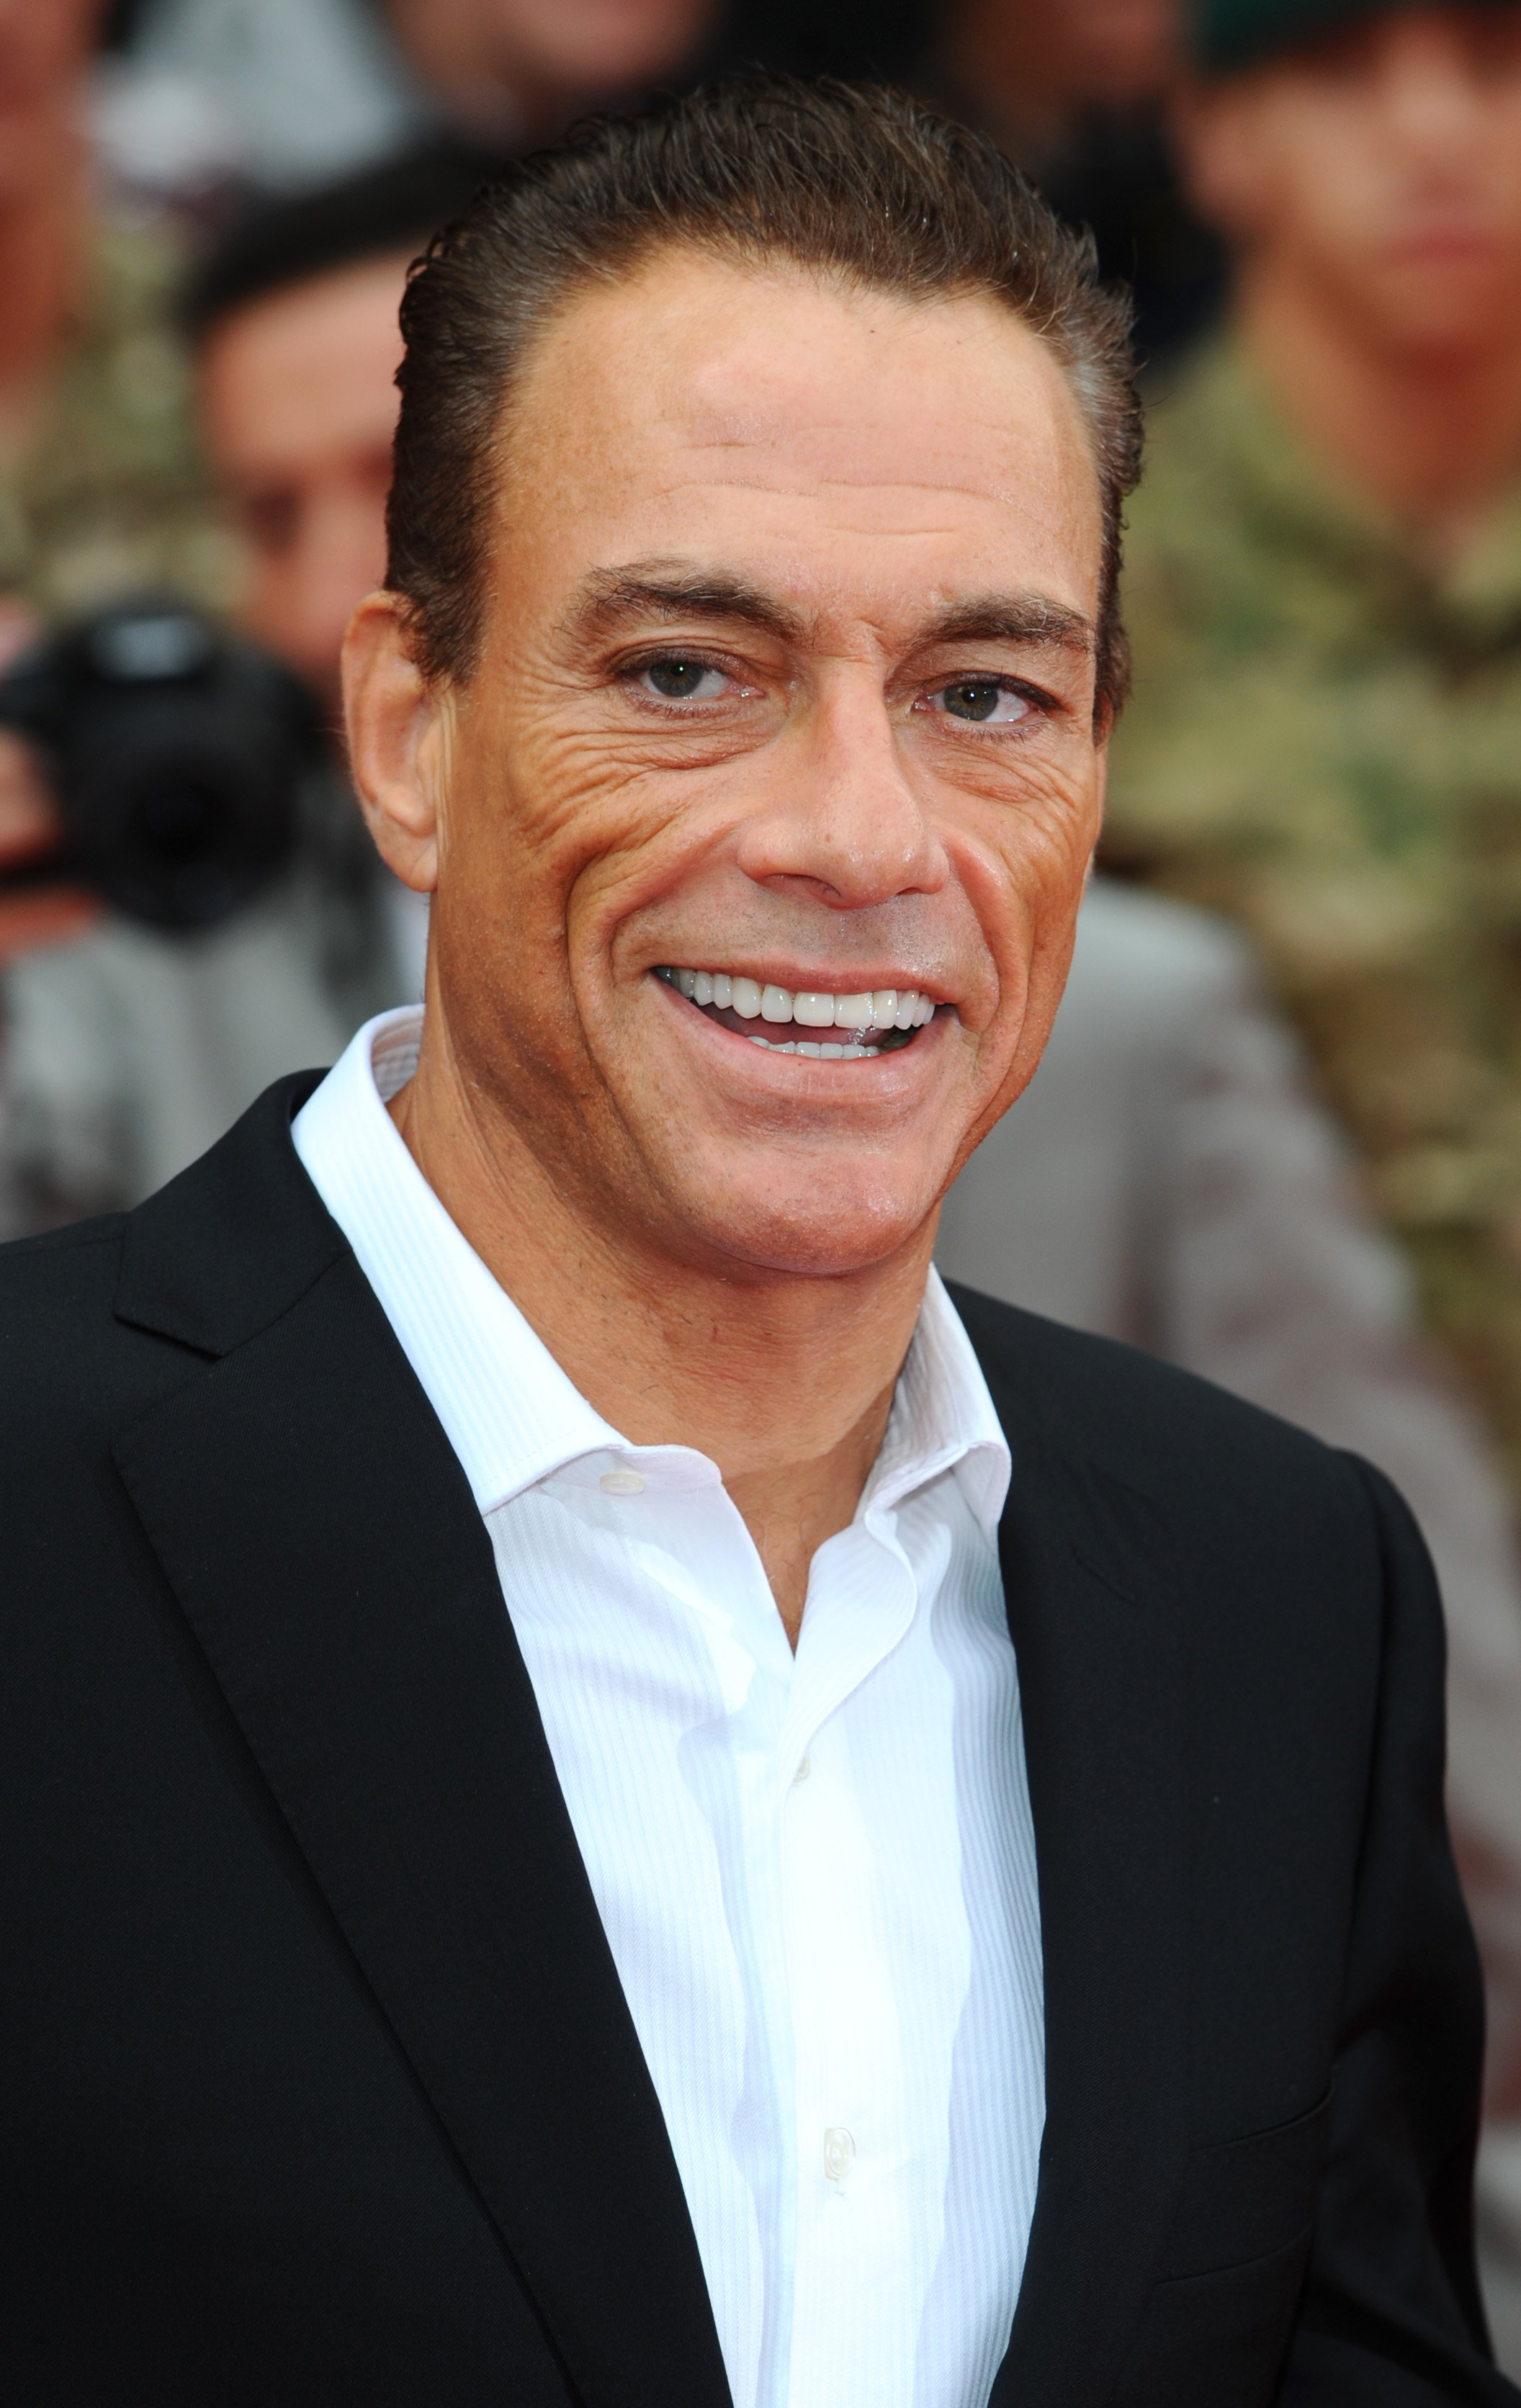 Jean-Claude Van Damme at The Expendables 2 Premiere on August 13, 2012 | Source: Getty Images.